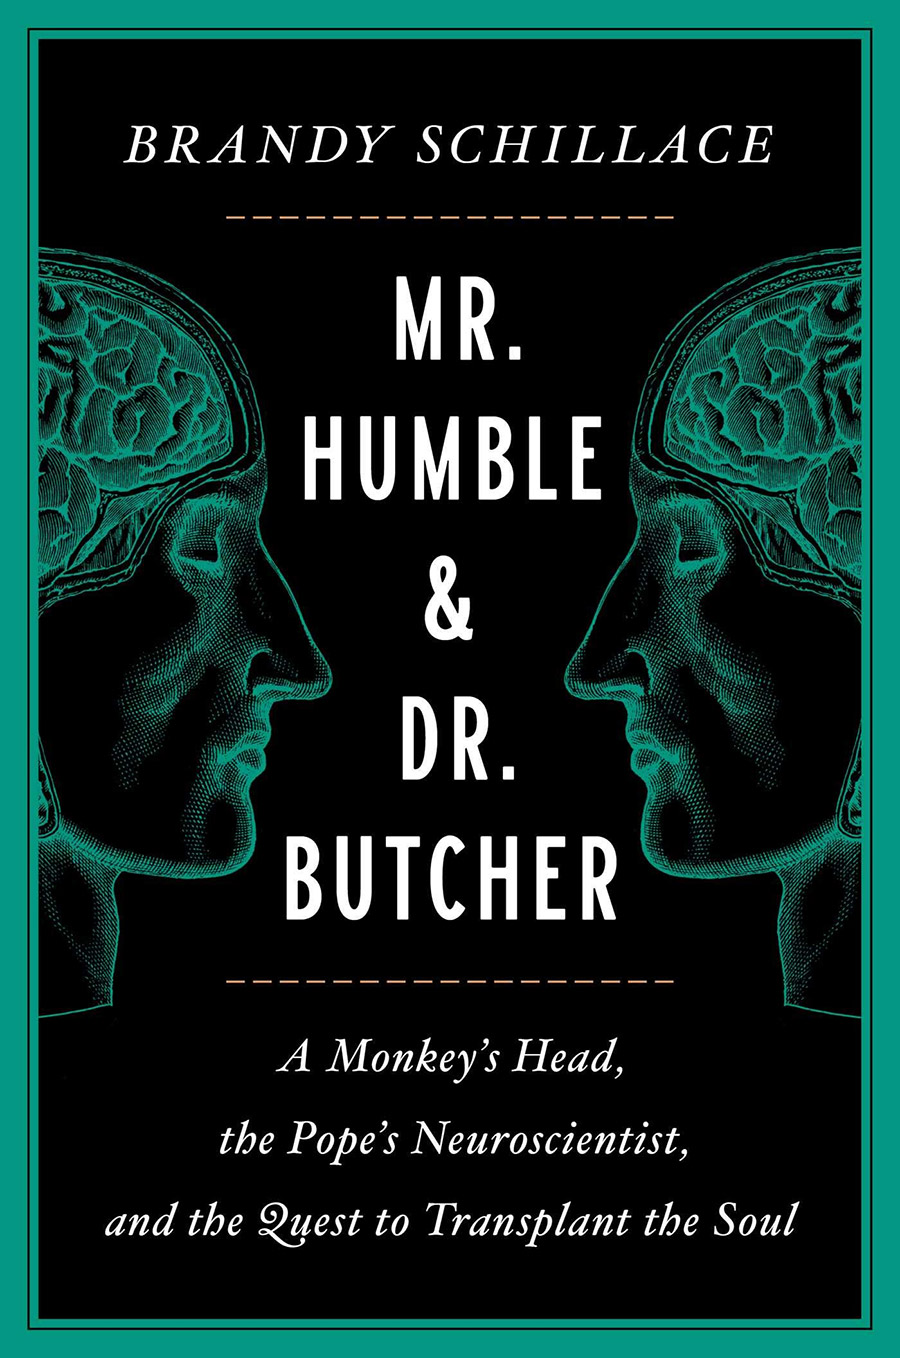 Mr. Humble & Dr. Butcher by Brandy Schillace